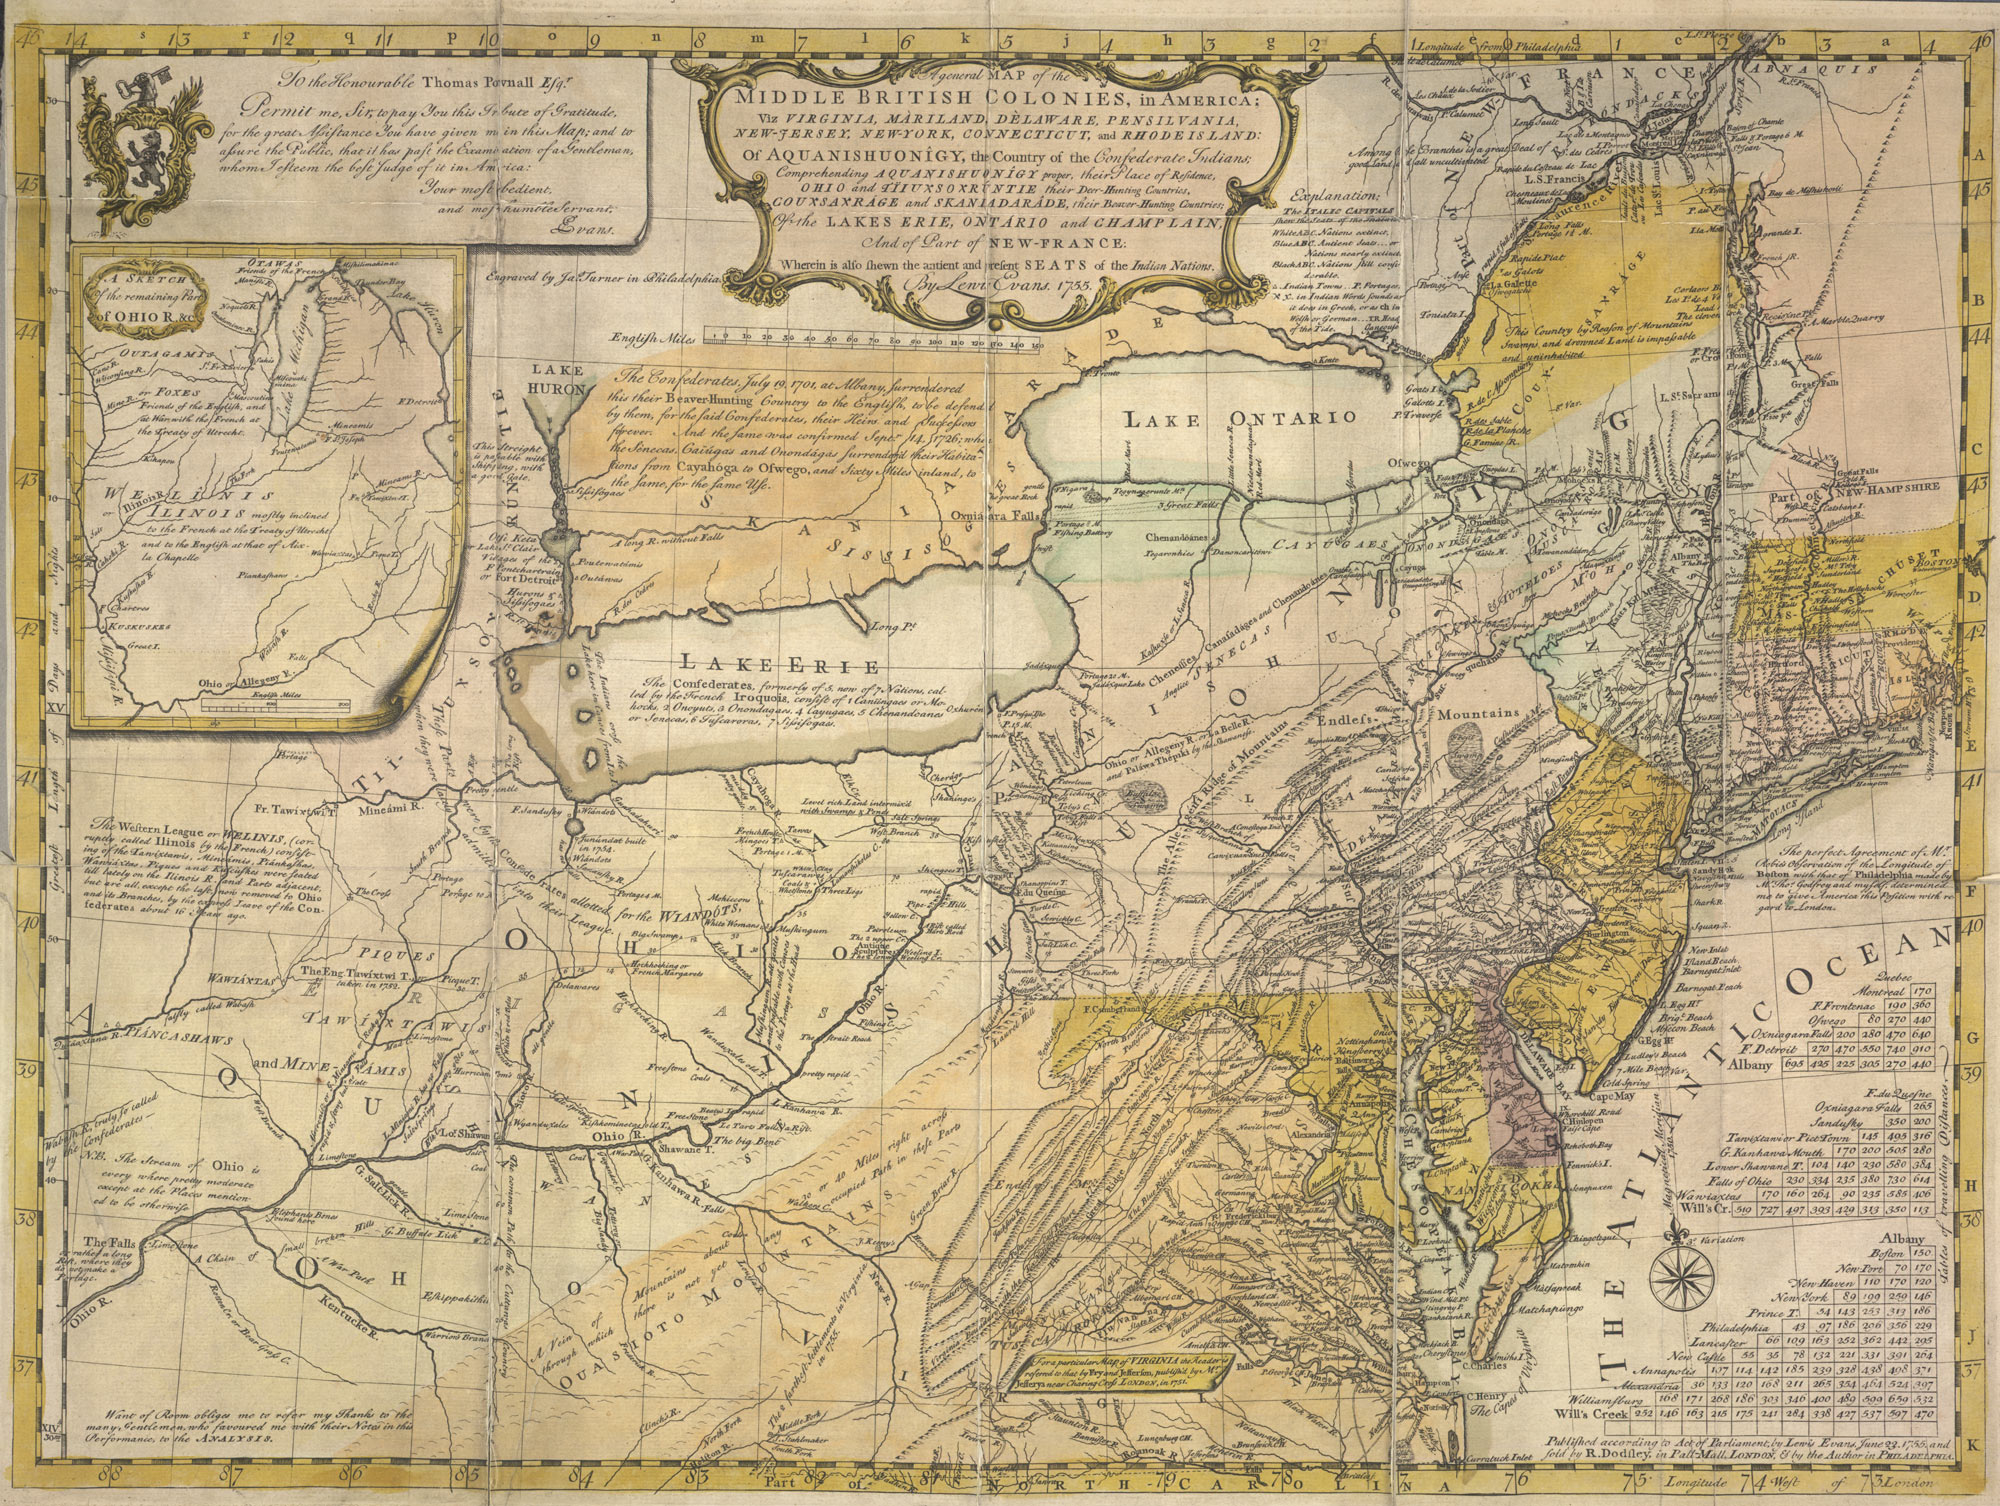 A General Map of the Middle British Colonies in America (C.32.h.12.)